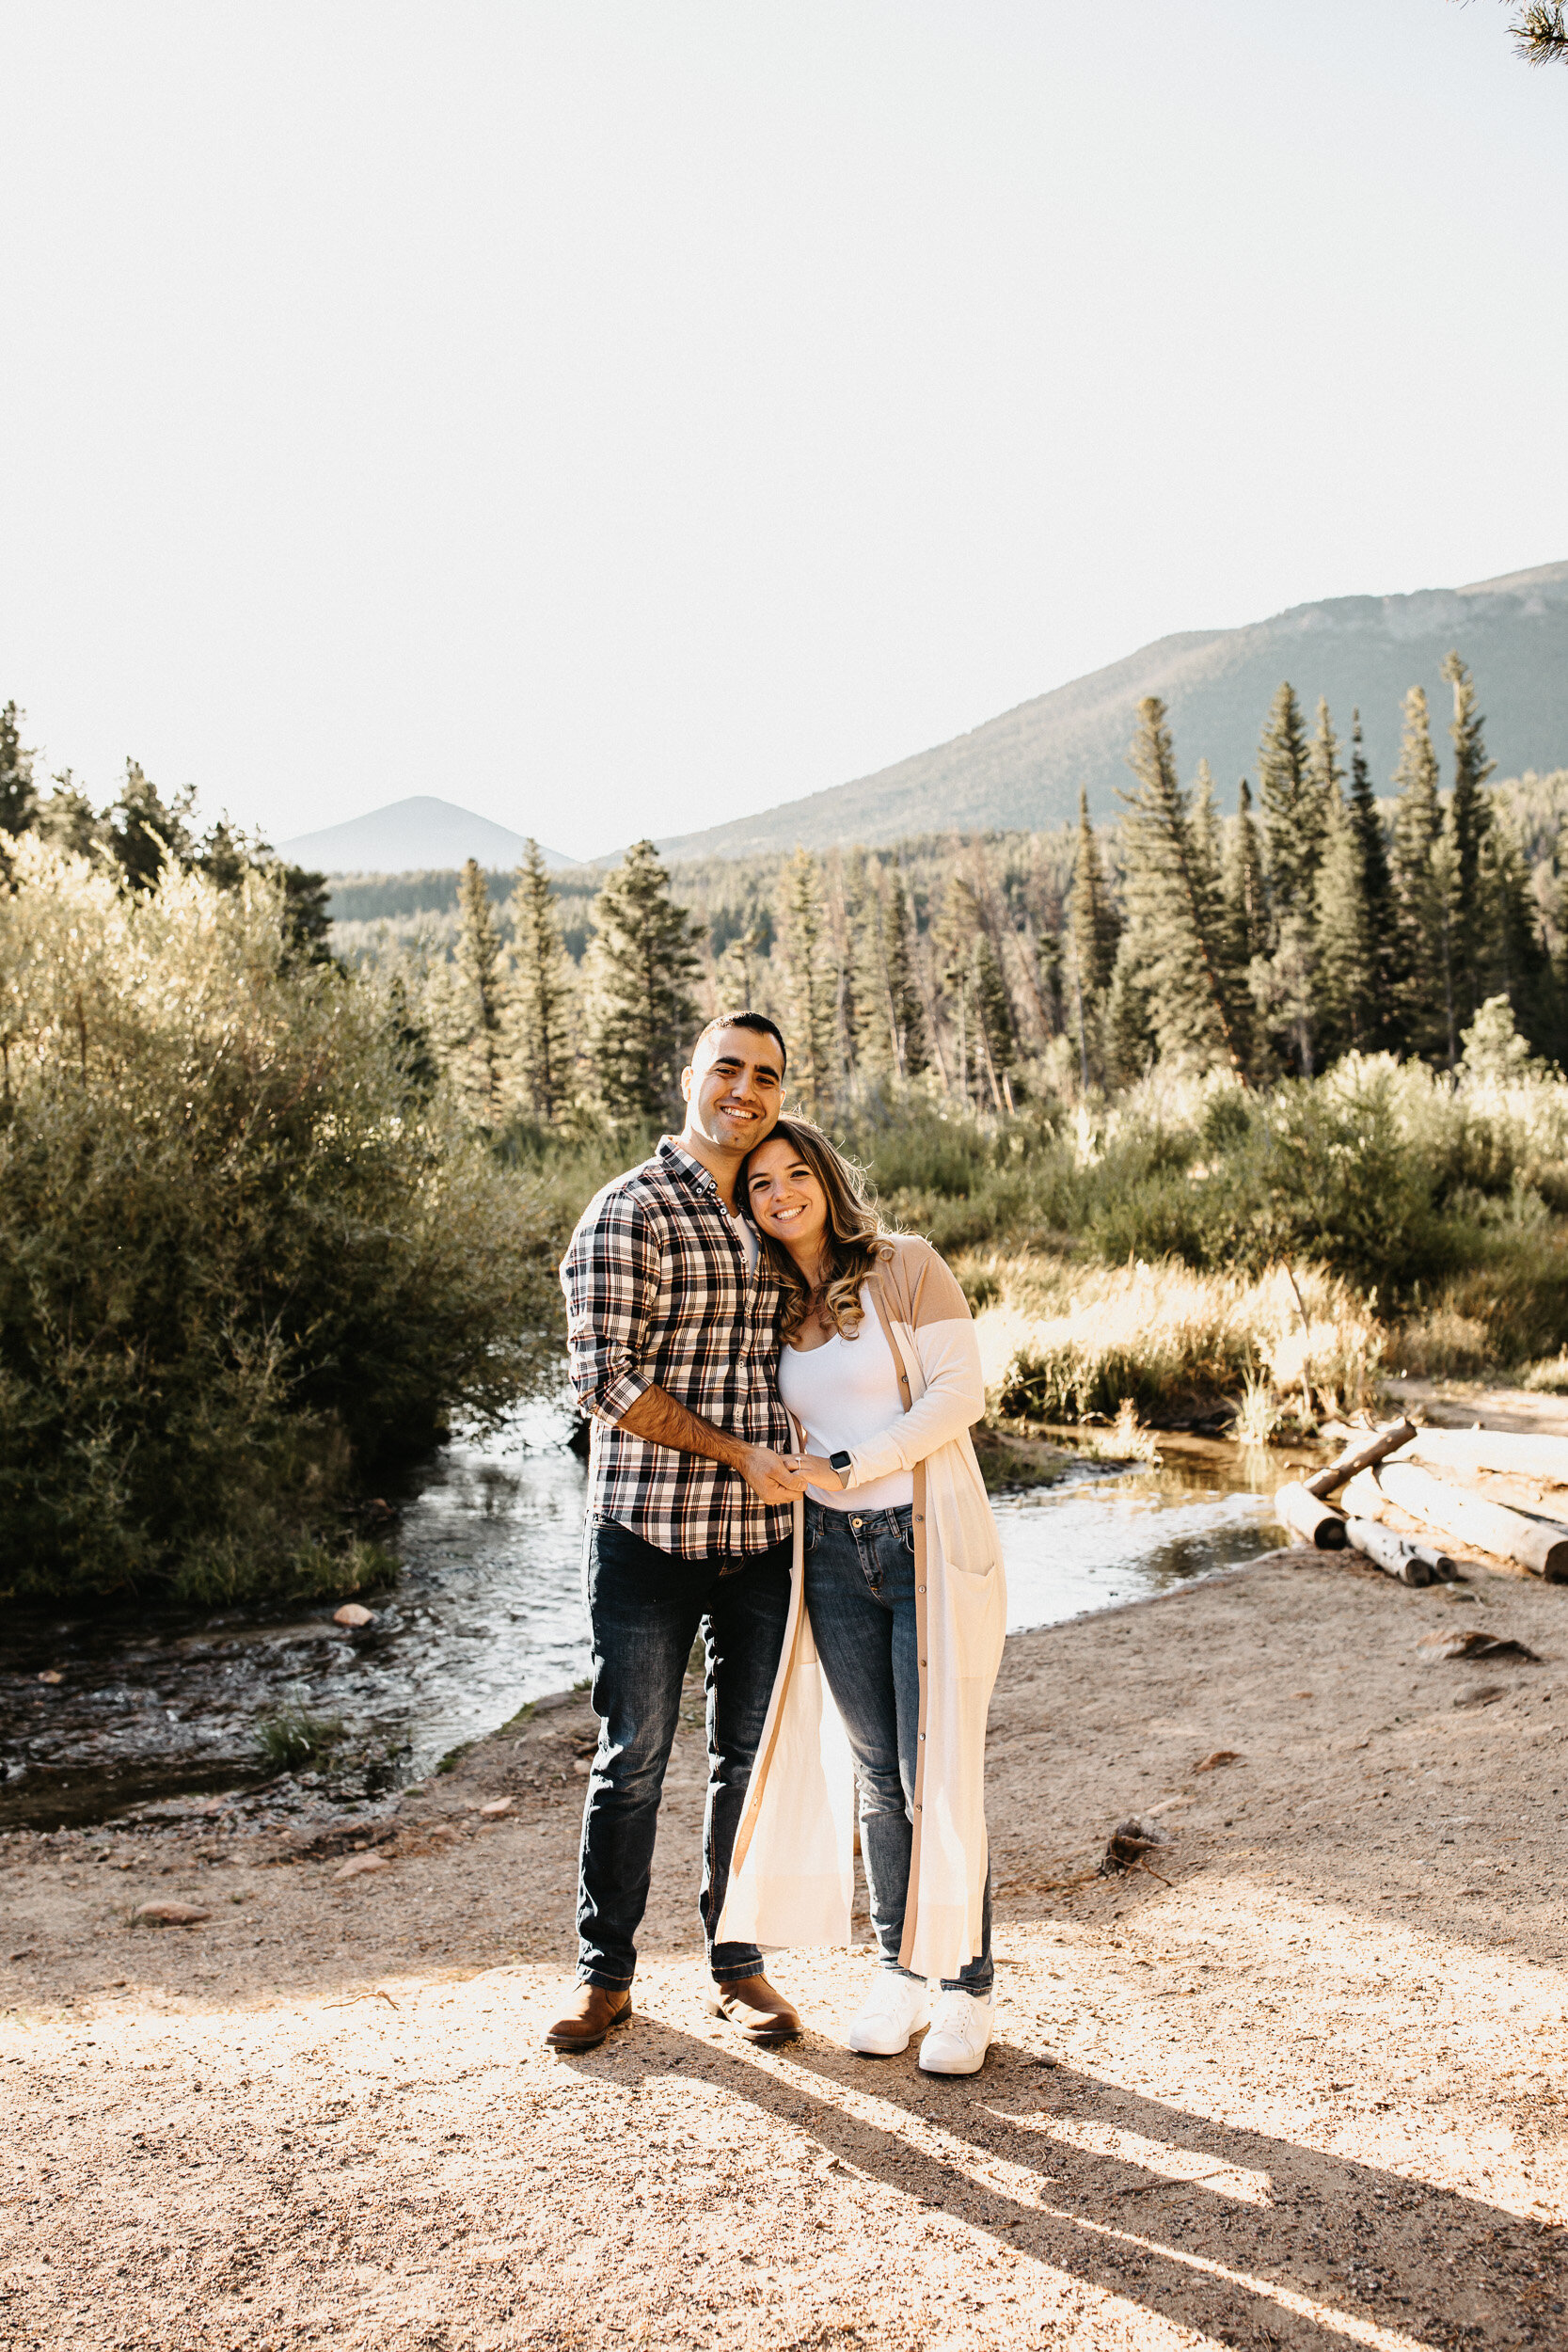 Asher_Proposal_Rocky_Mountain_Nation_Park_Sprague_Lake_618.jpg